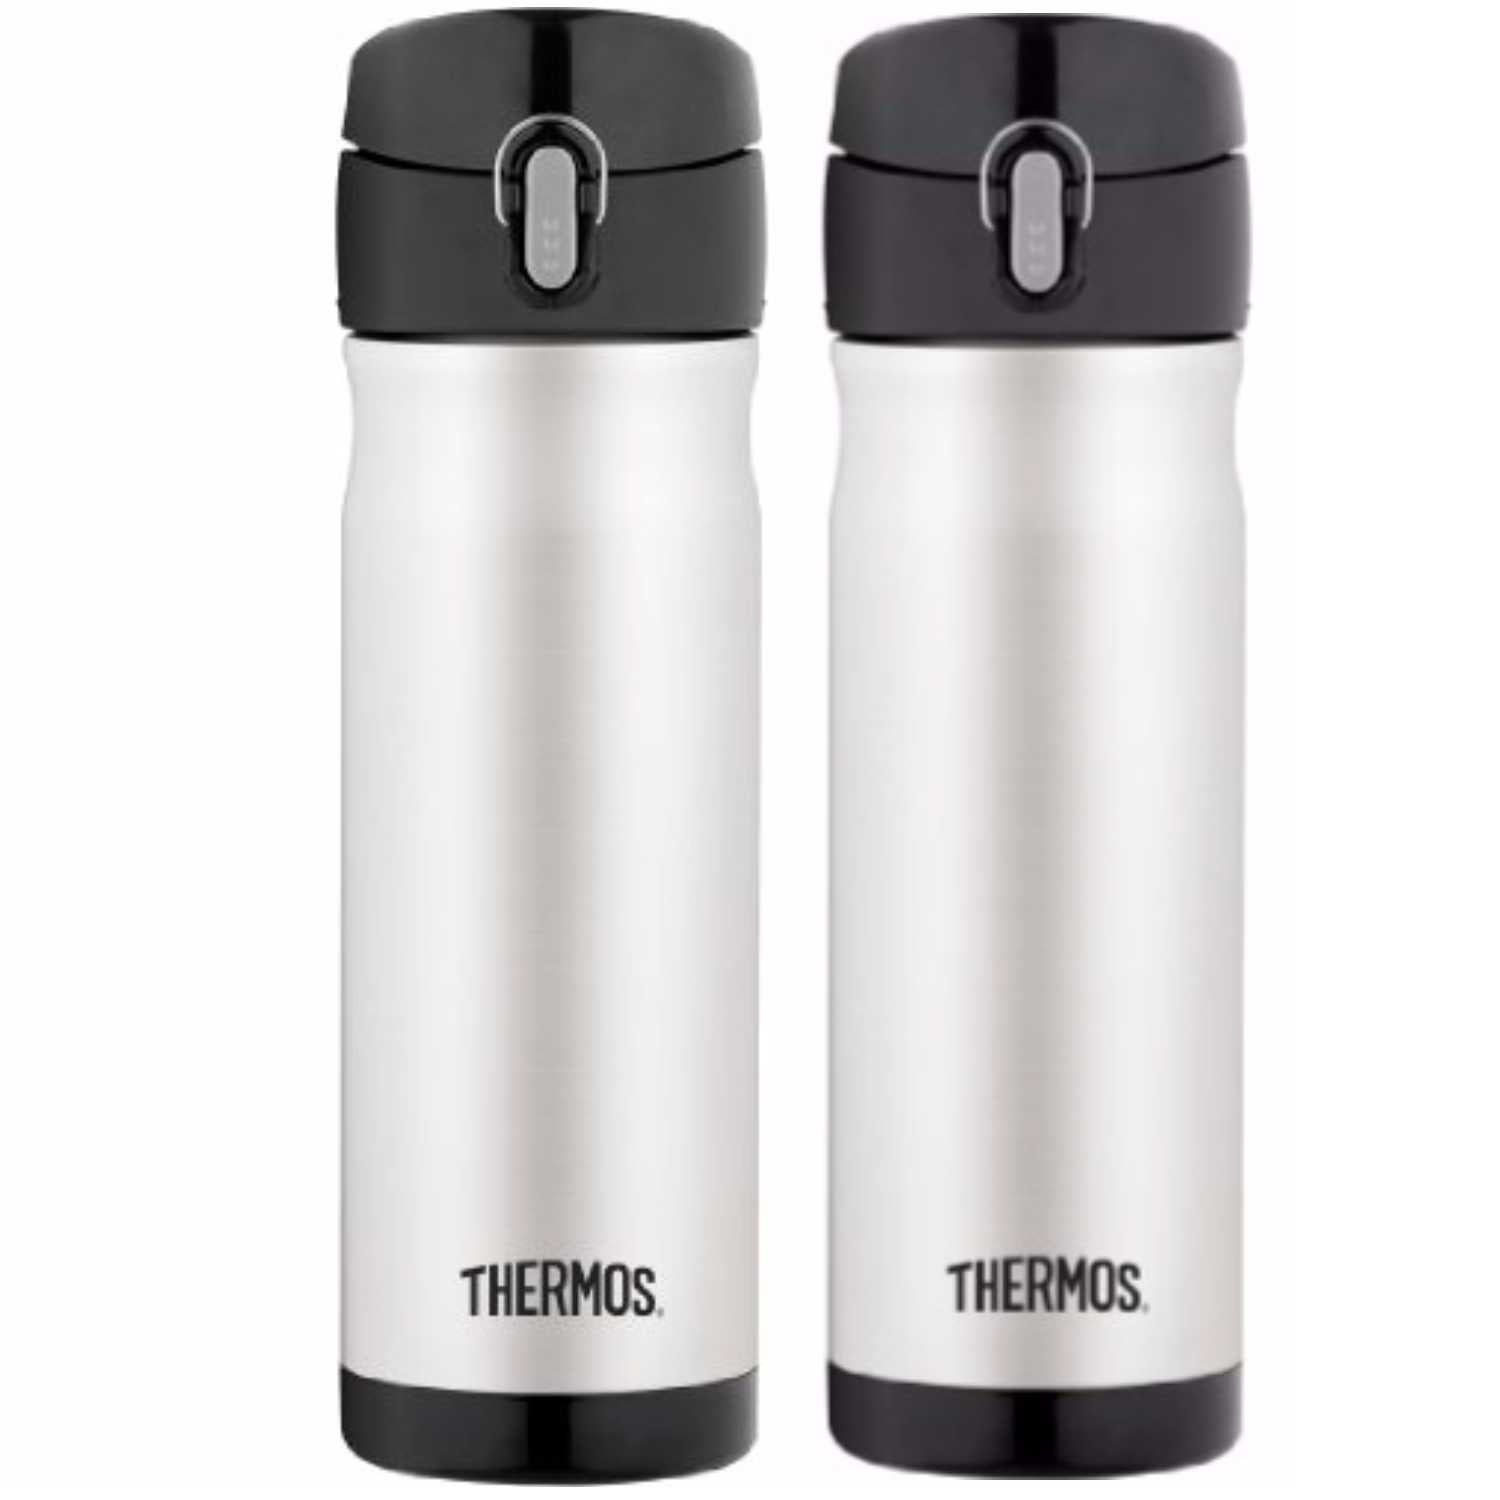 79c9664b26 Shop Thermos Vacuum Insulated 16 Oz Stainless Steel Commuter Bottle  (2-Pack) - Free Shipping On Orders Over $45 - Overstock.com - 23059235